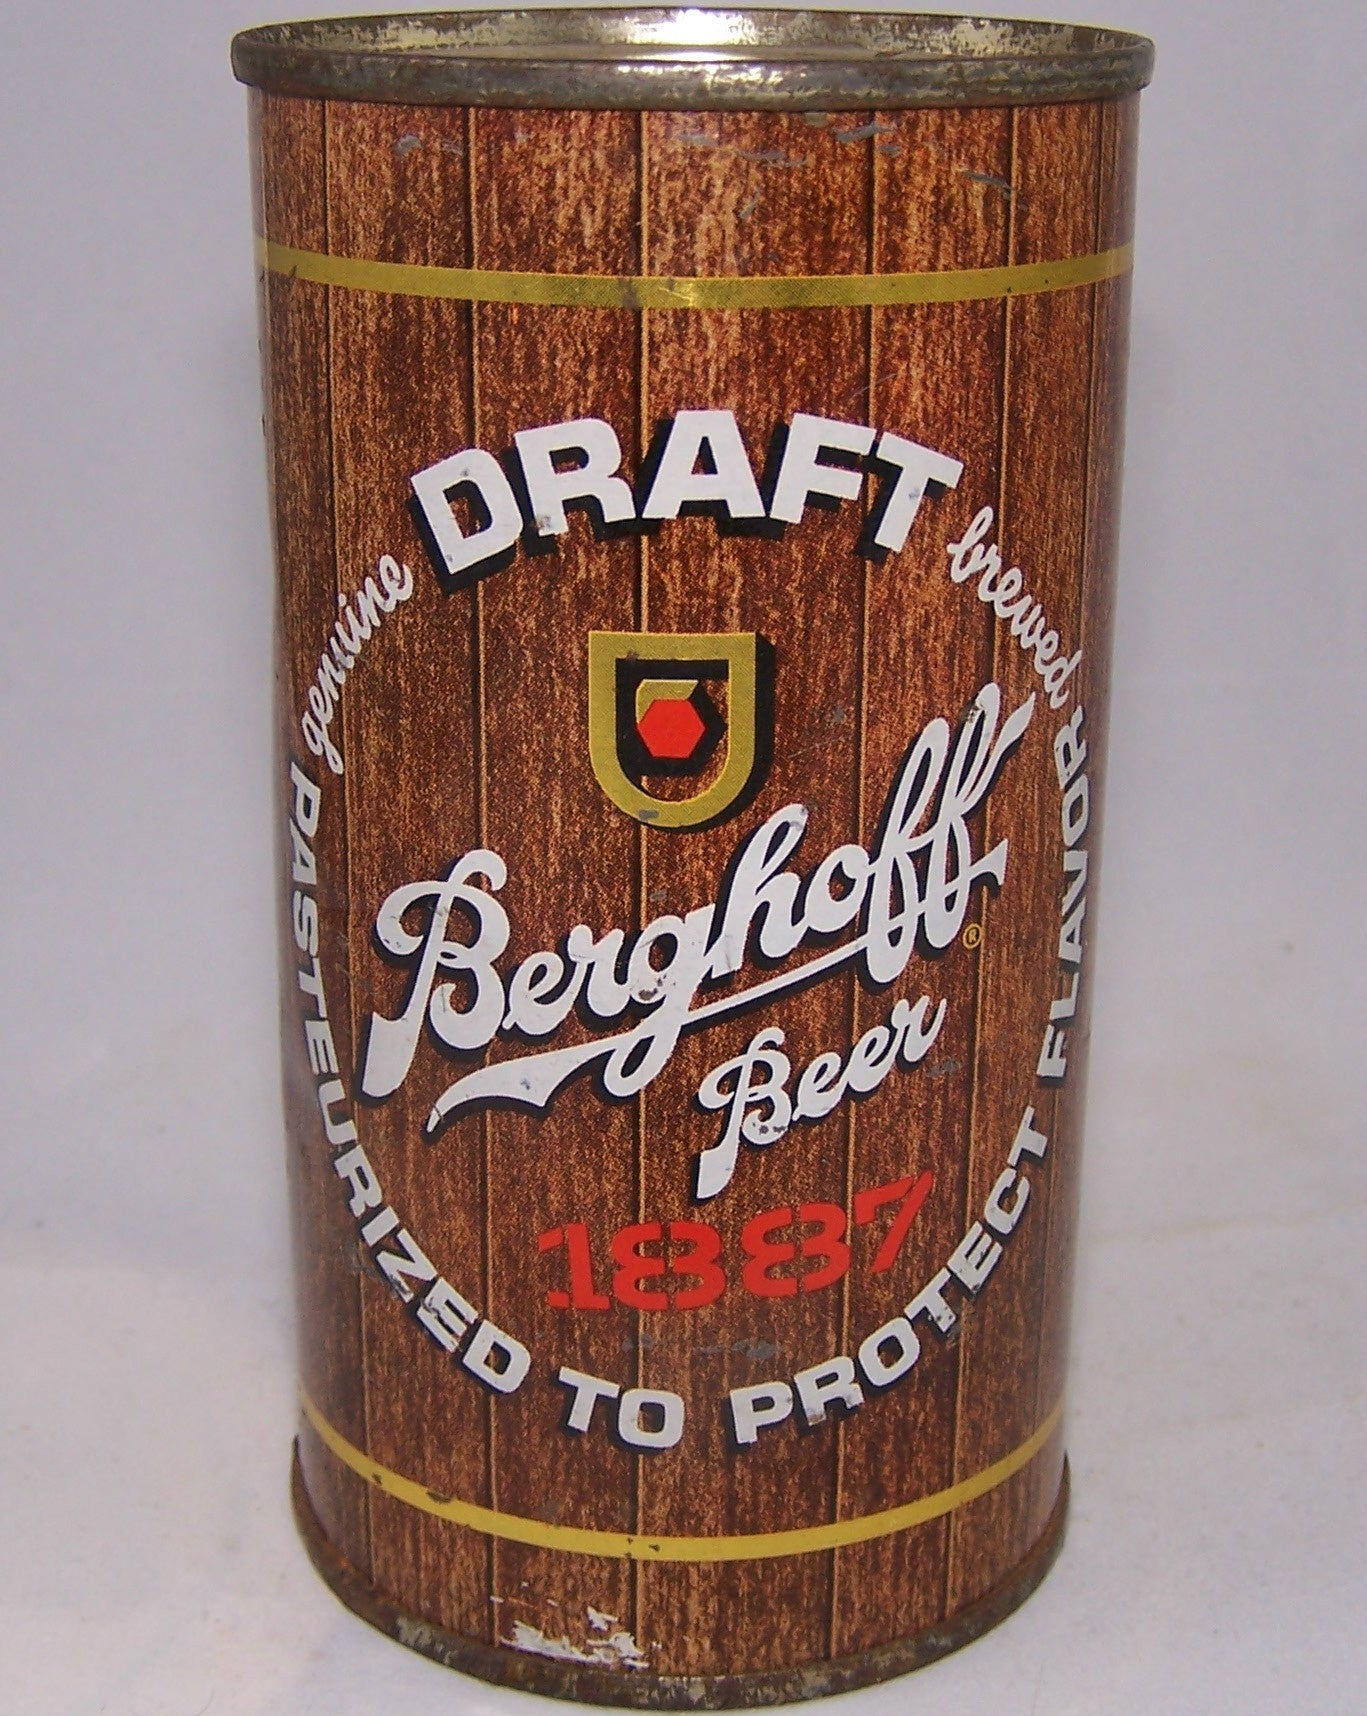 Berghoff Draft Beer 1887, USBC 36-8, Grade 1- Sold on 06/15/16